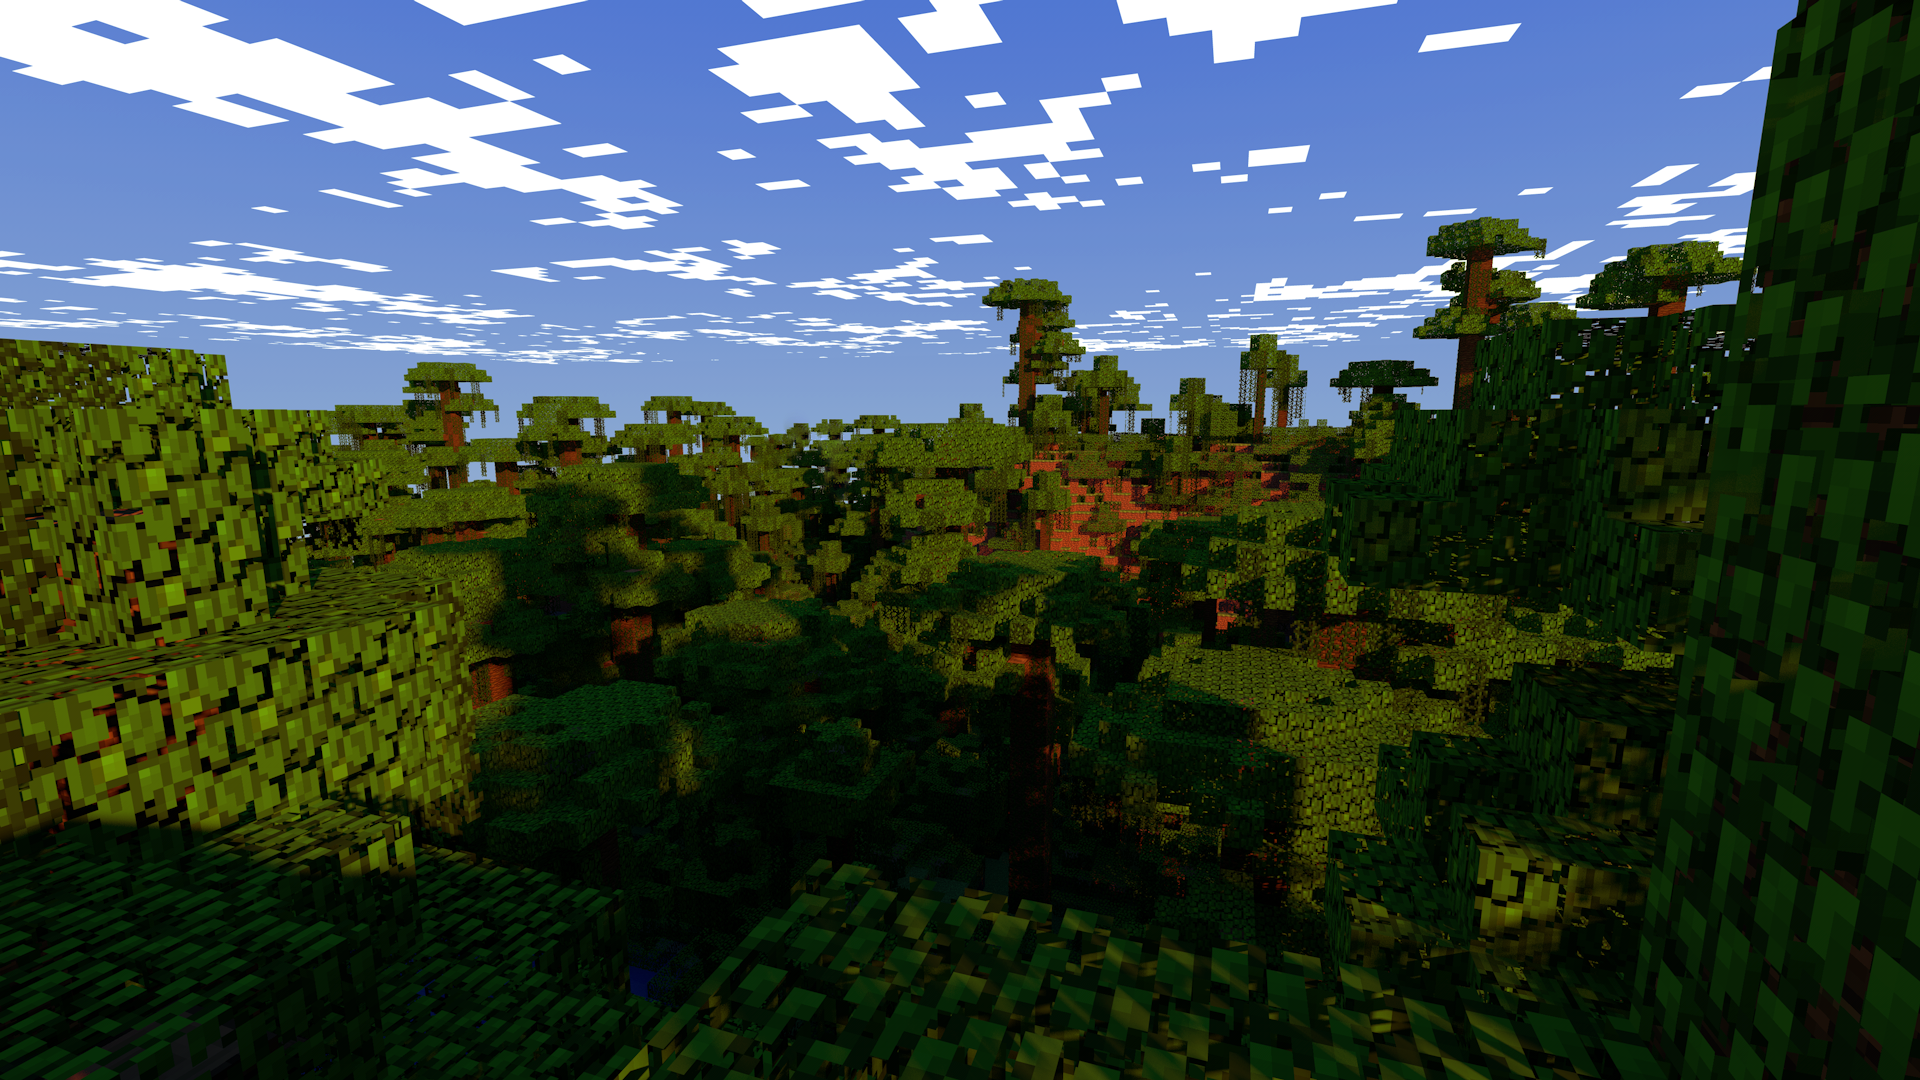 Simple Wallpaper Minecraft Scenery - 94371e29cab58c104174c7d67a8eef52  Pic_597691.png